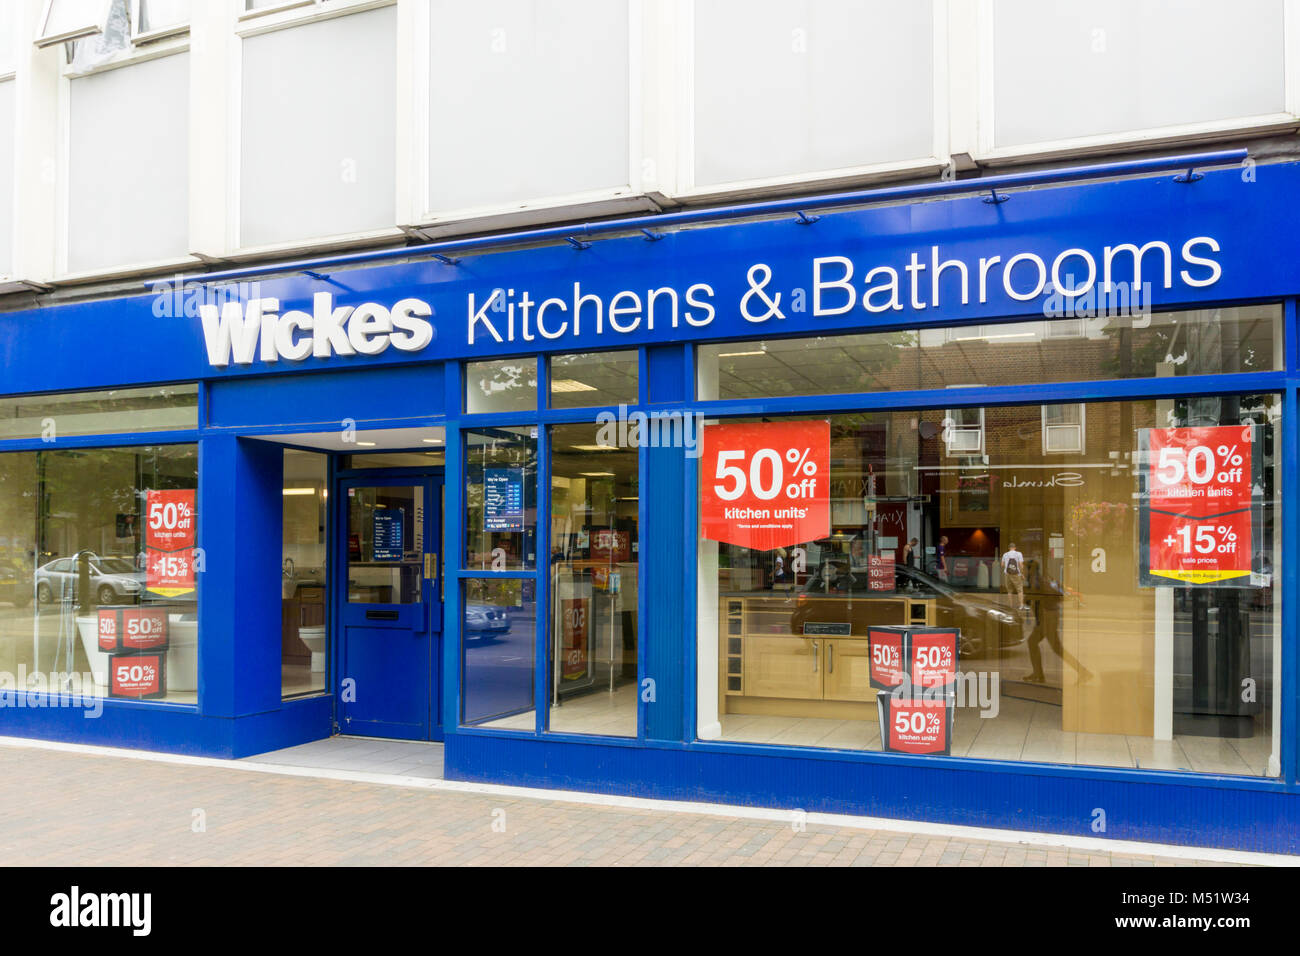 Wickes Kitchens & Bathrooms shop in Orpington High Street. - Stock Image